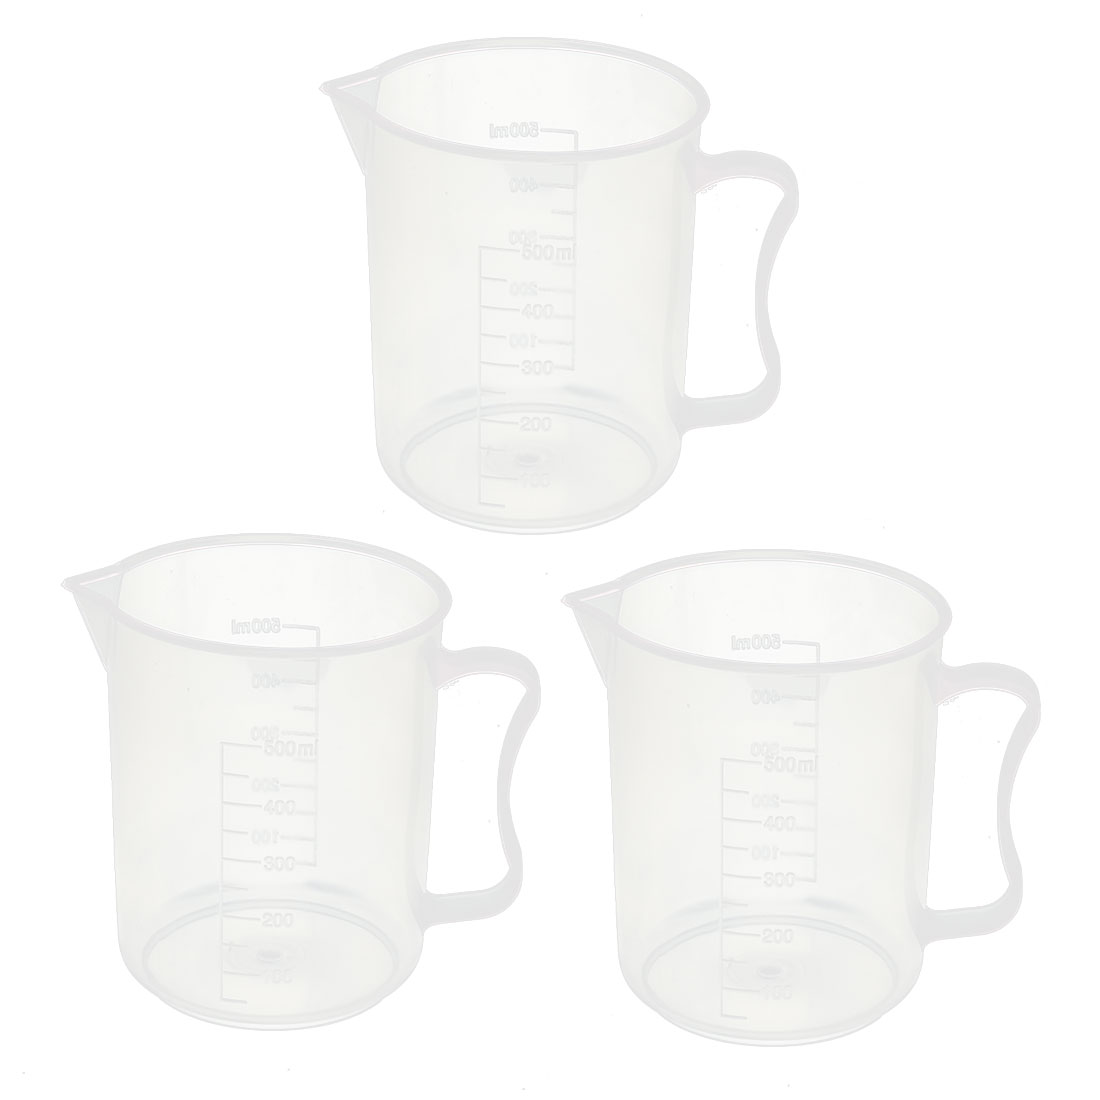 3 Pcs 500ML Measuring Cup Jug Graduated Surface Spoon Cooking Bakery Kitchen